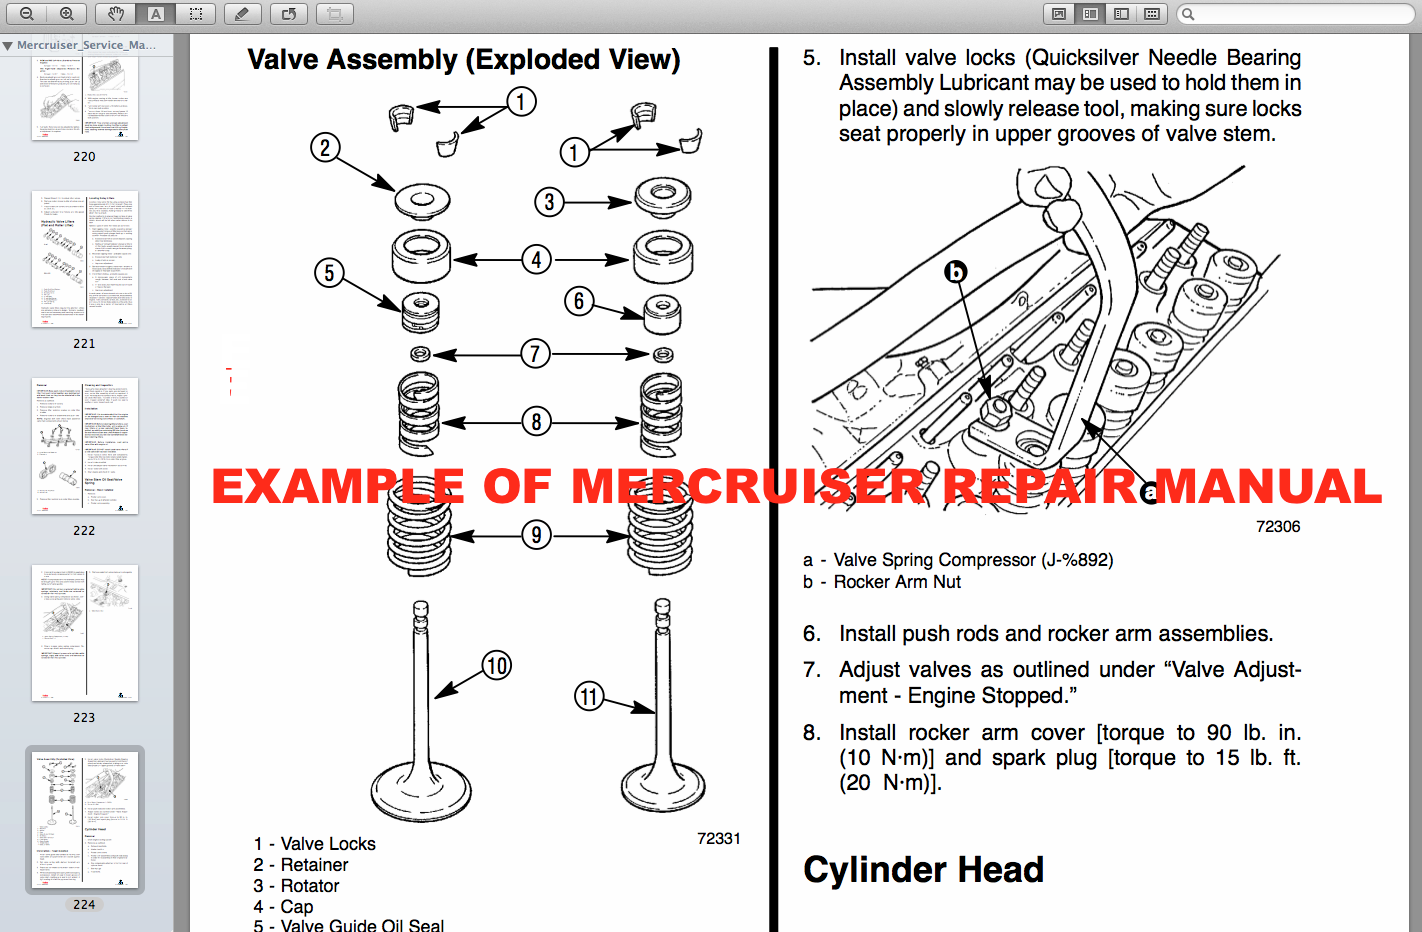 Download mercruiser factory service manual online free pdf guide